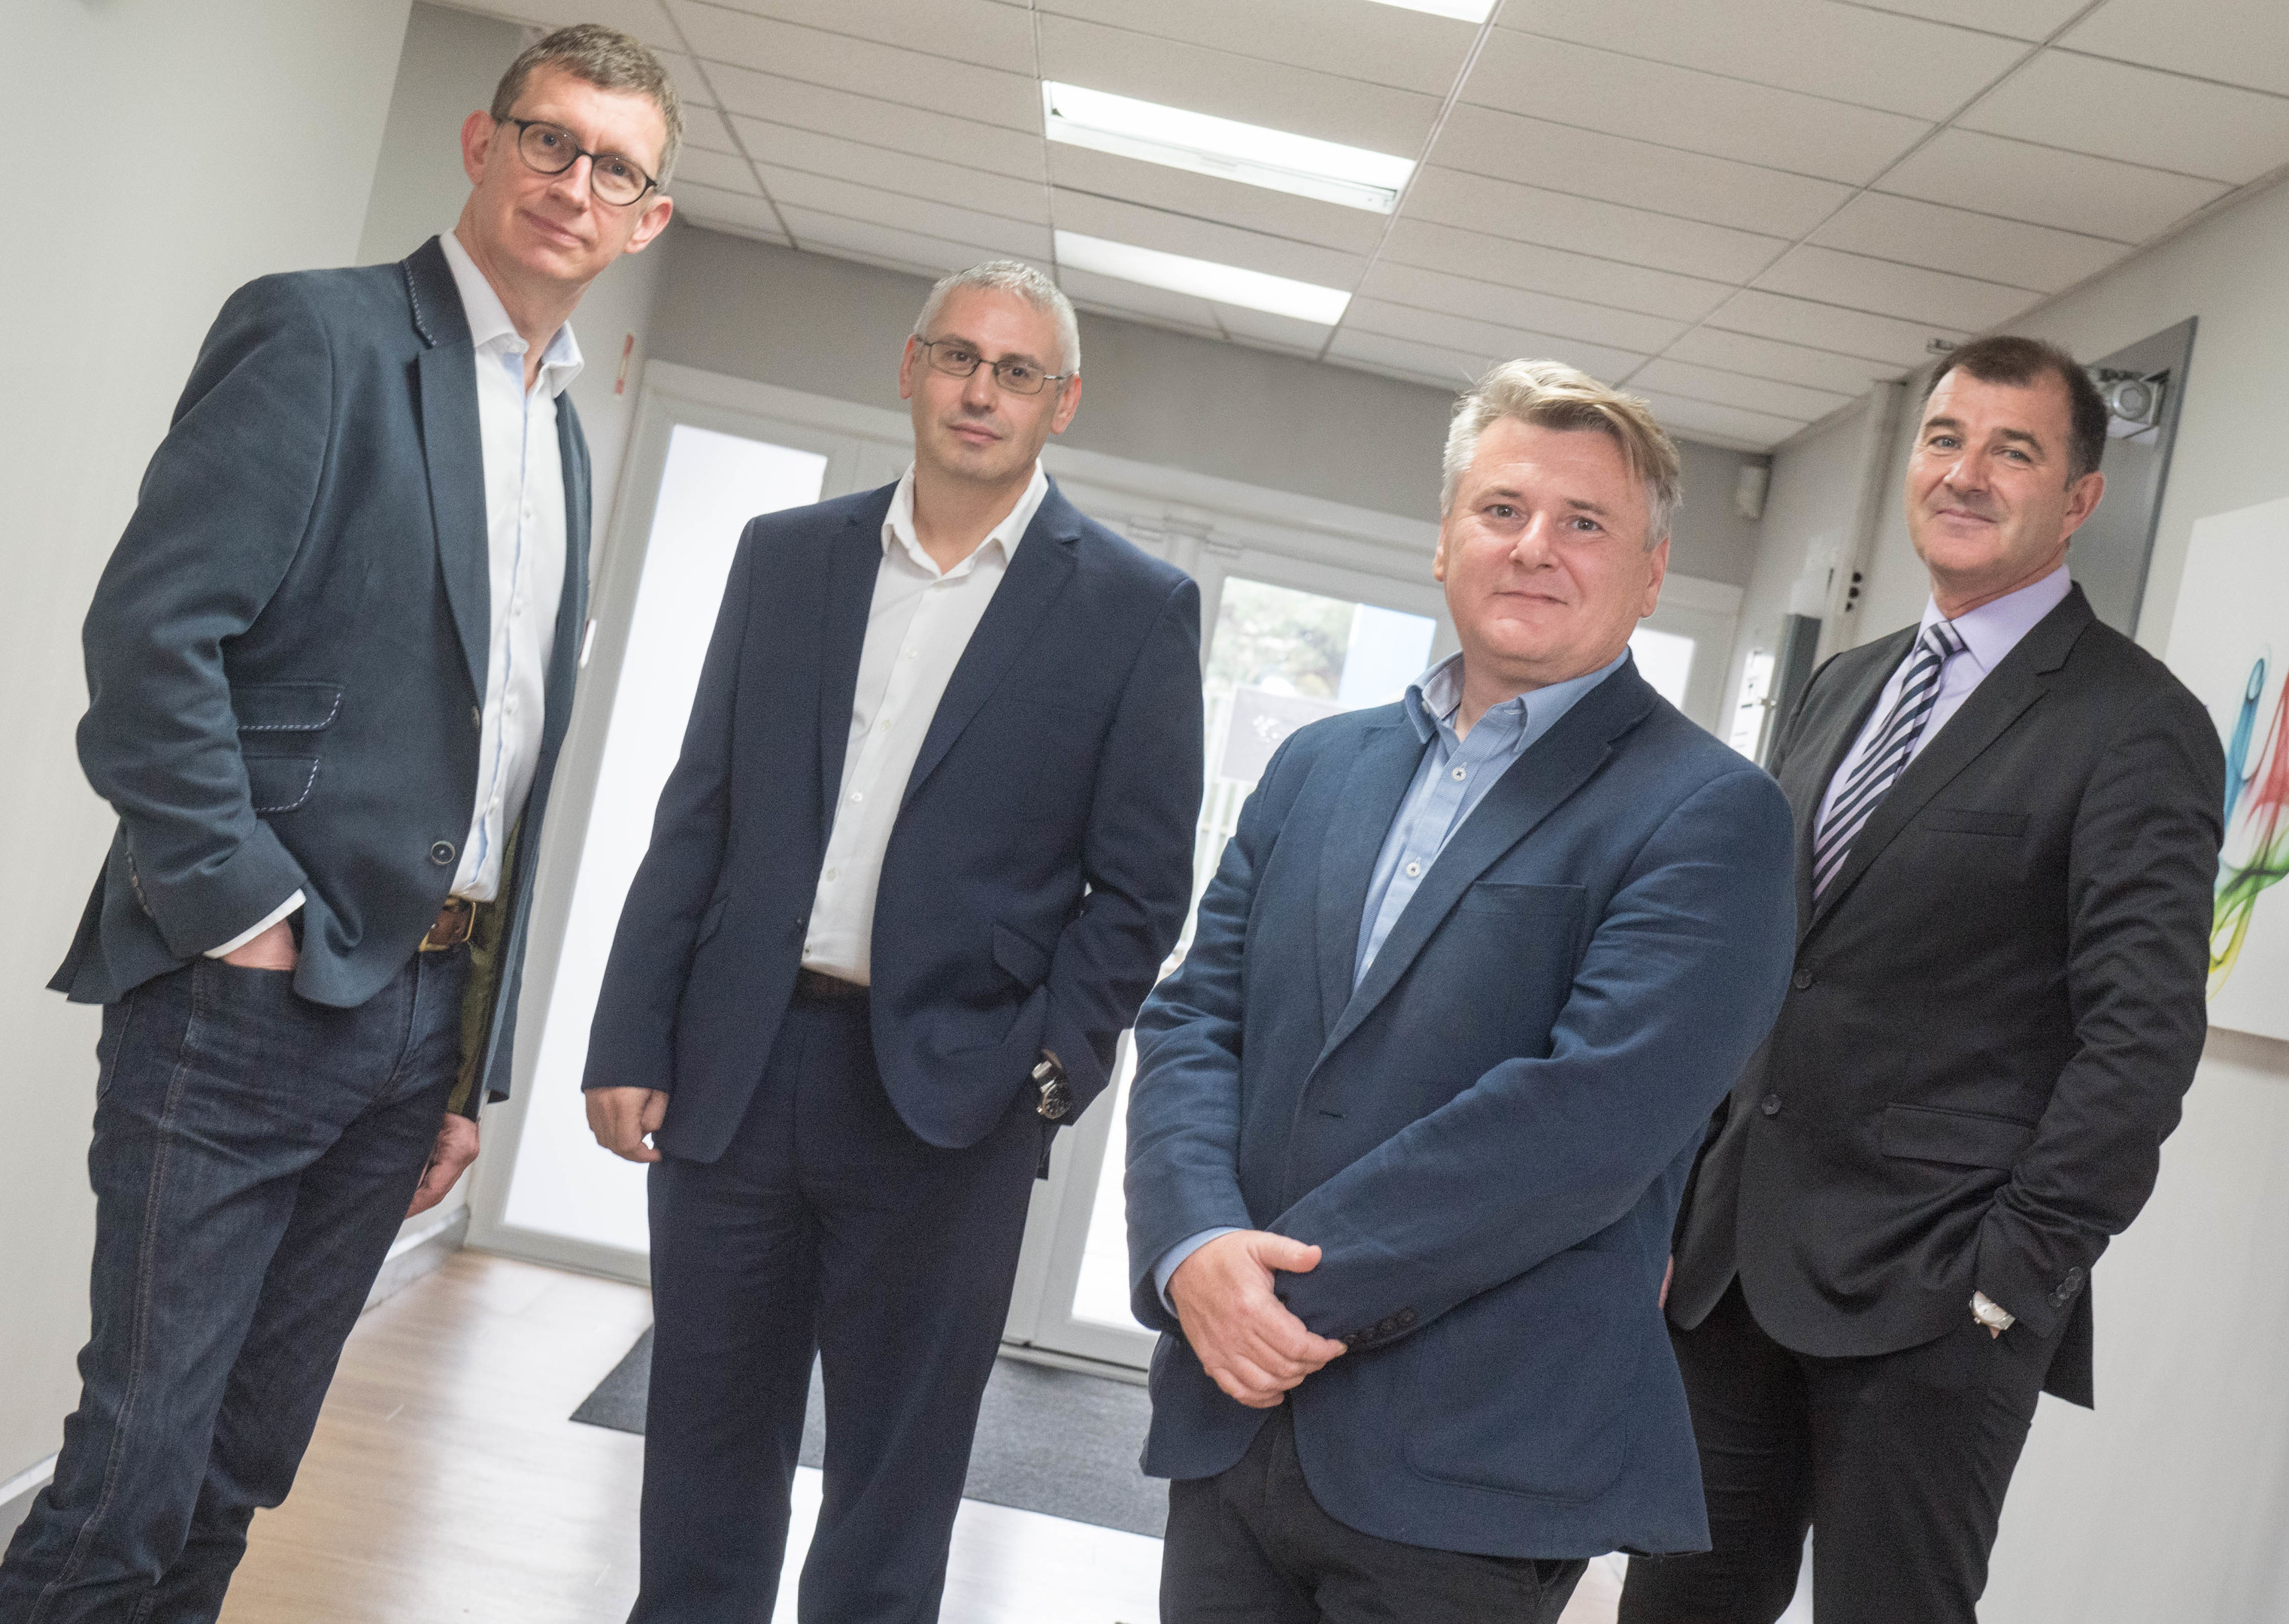 L-R: Stuart Ferguson, FrontRow chief executive, Gary Smart, Well-Centric CEO, Craig Feherty, Well-Sense CEO, and Alasdair Fergusson, Clearwell managing director.